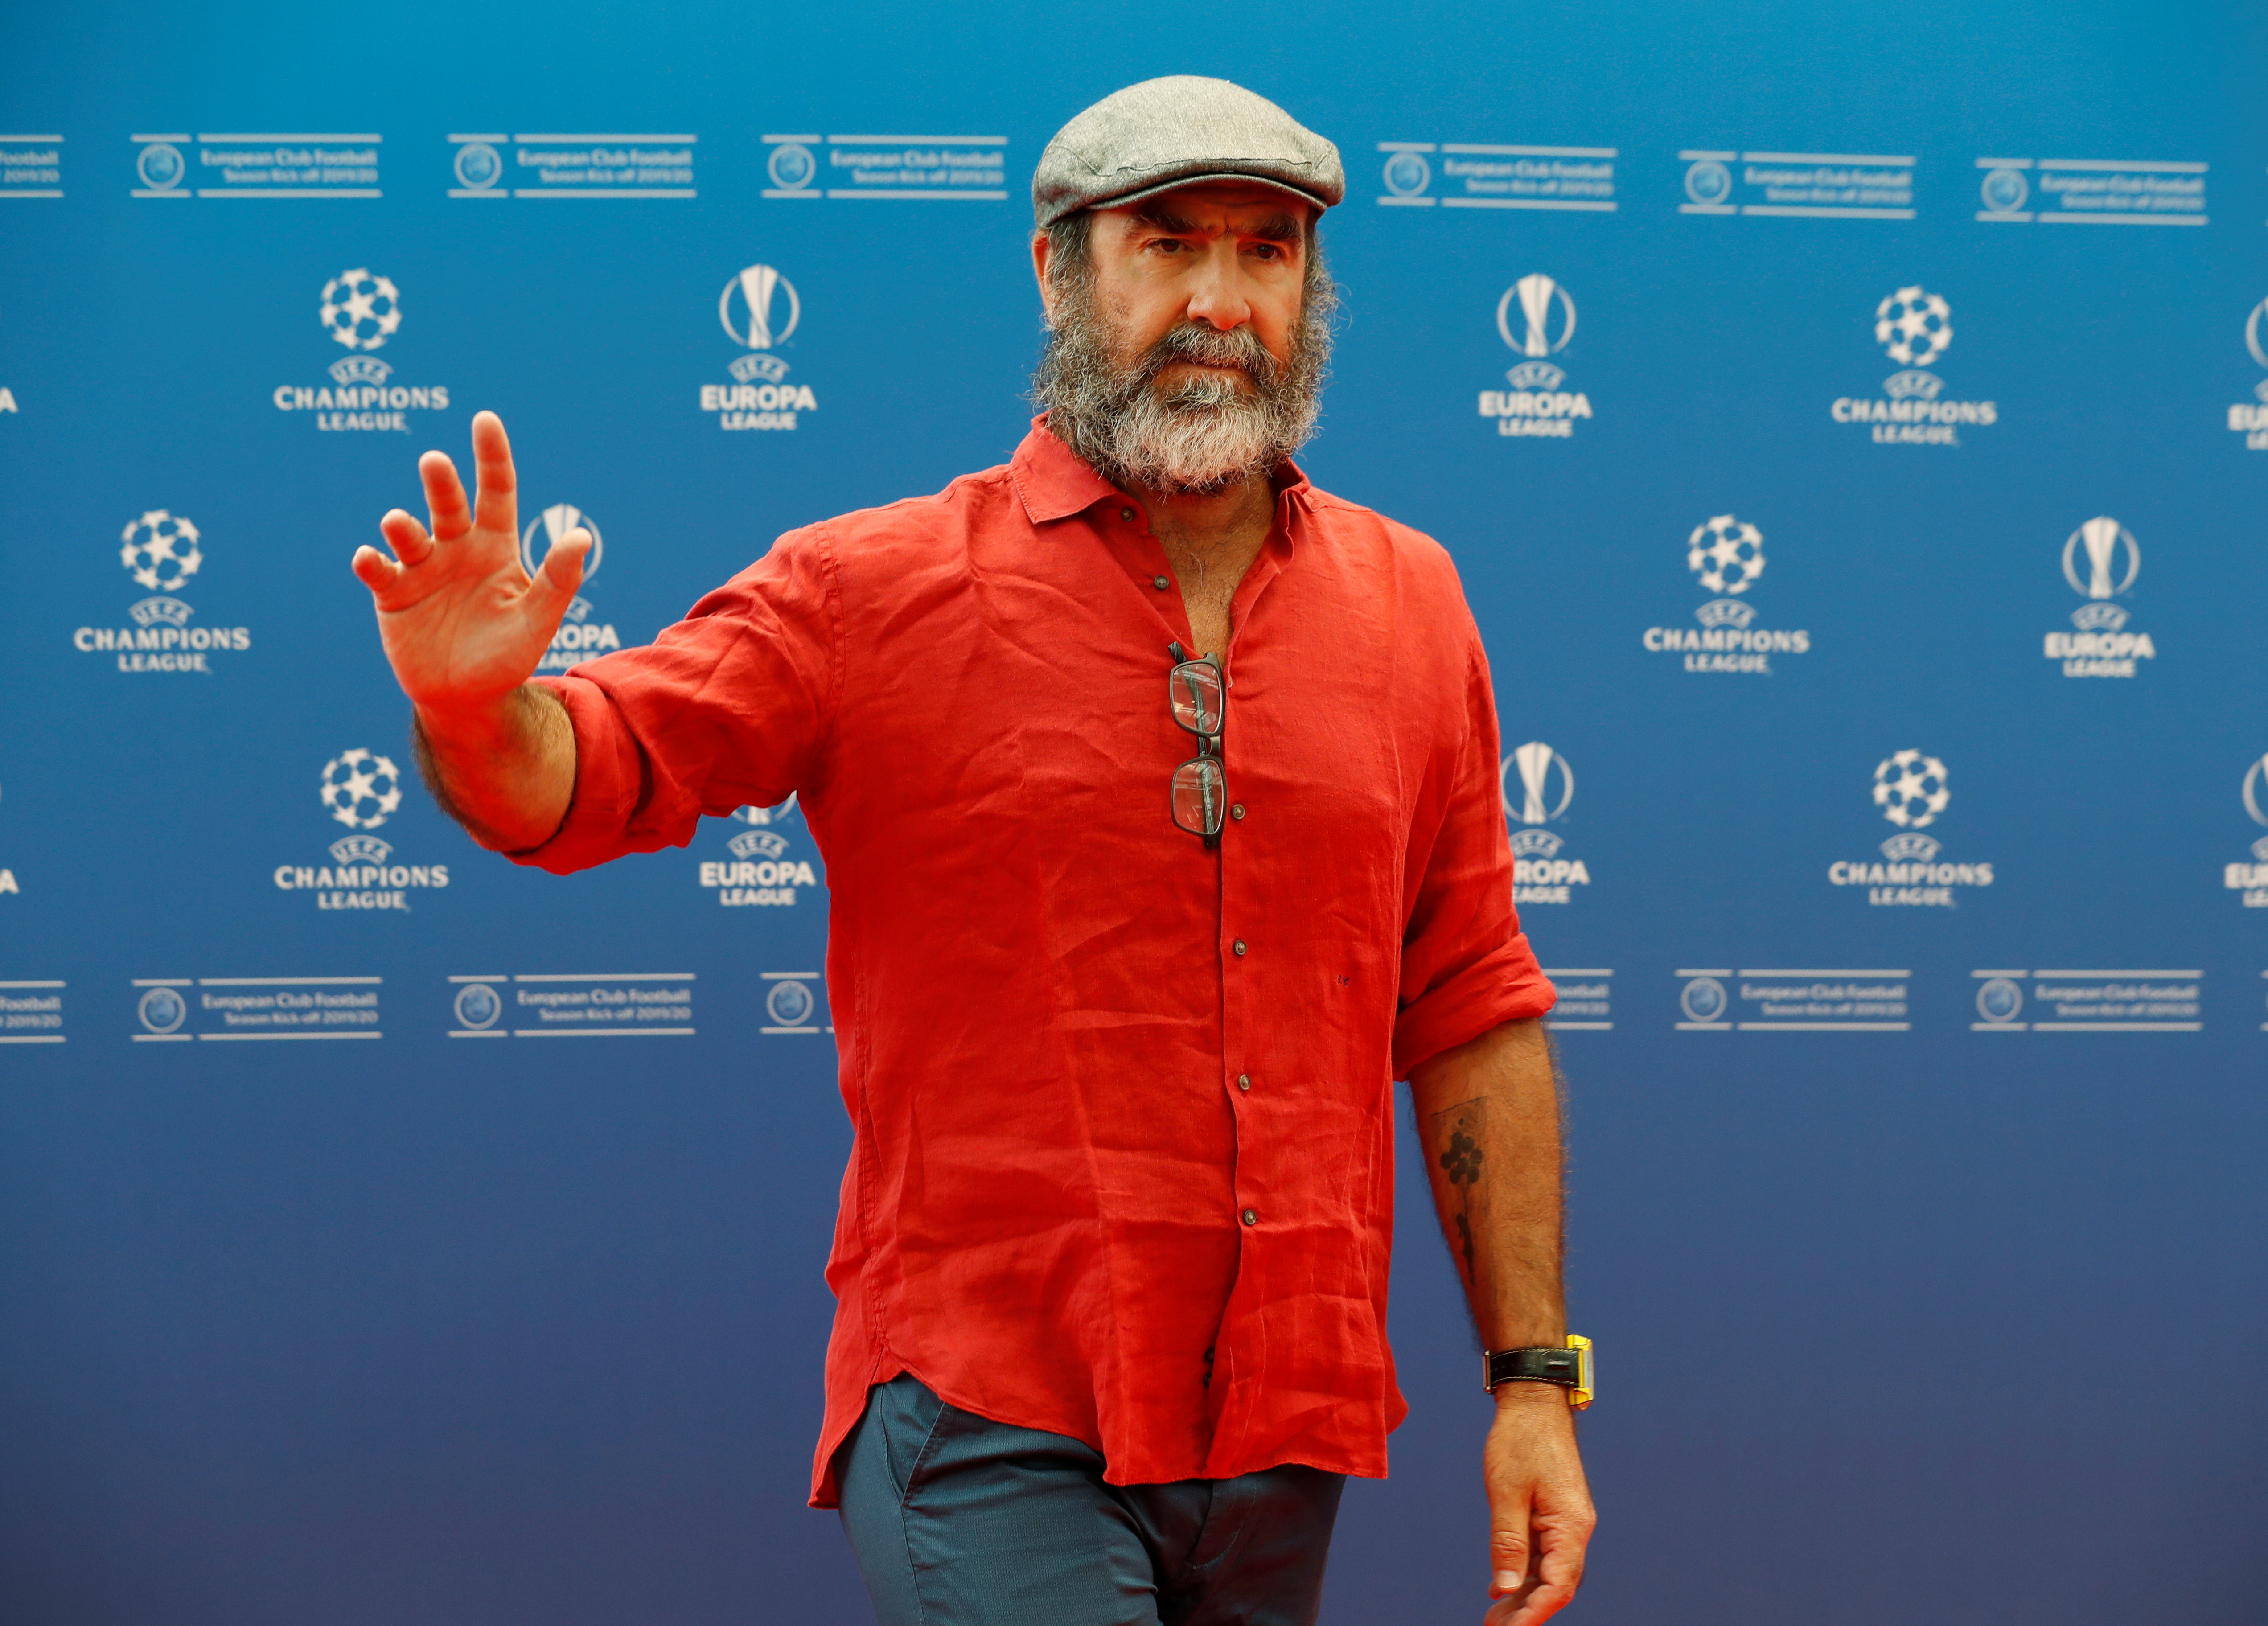 Soccer Football - Champions League Group Stage draw - Grimaldi Forum, Monaco - August 29, 2019   Eric Cantona before the draw   REUTERS/Eric Gaillard